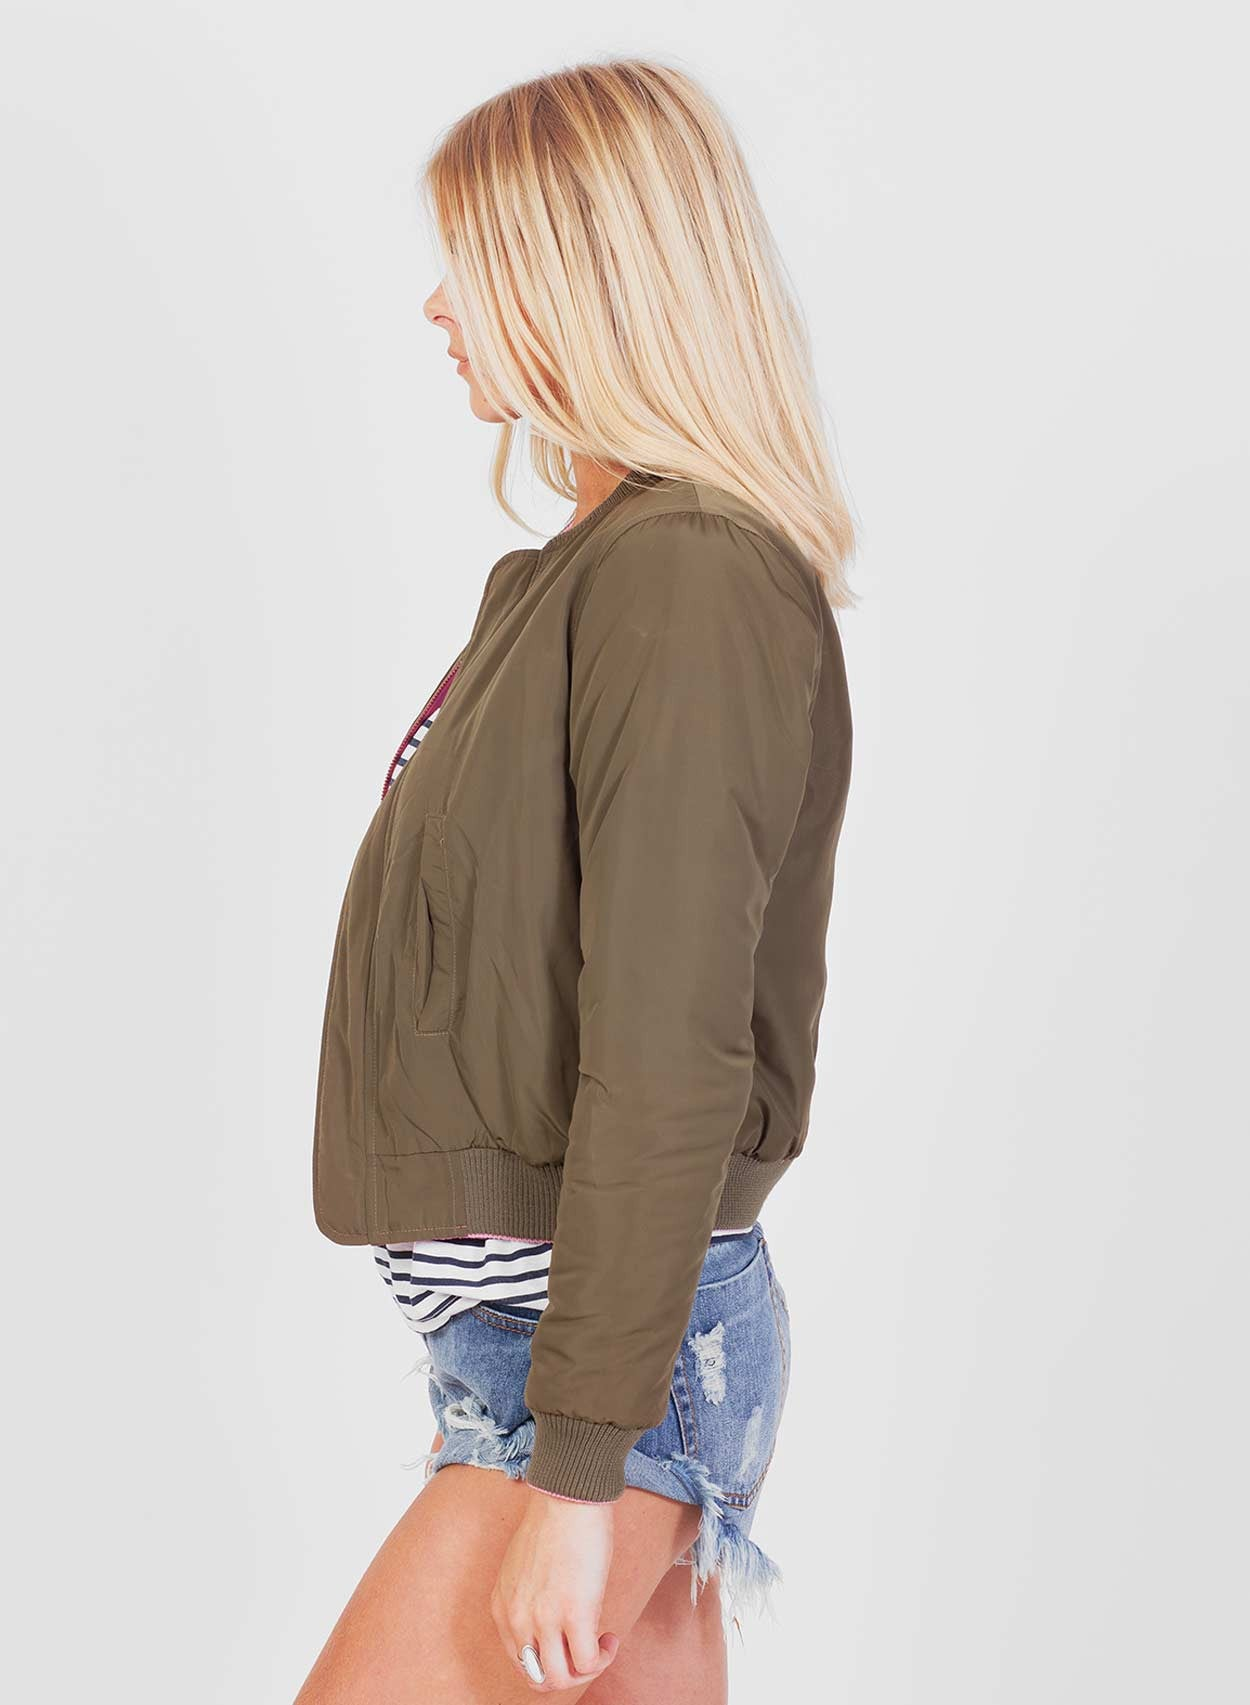 Love Reversible Bomber - LoveClothing.com - 9